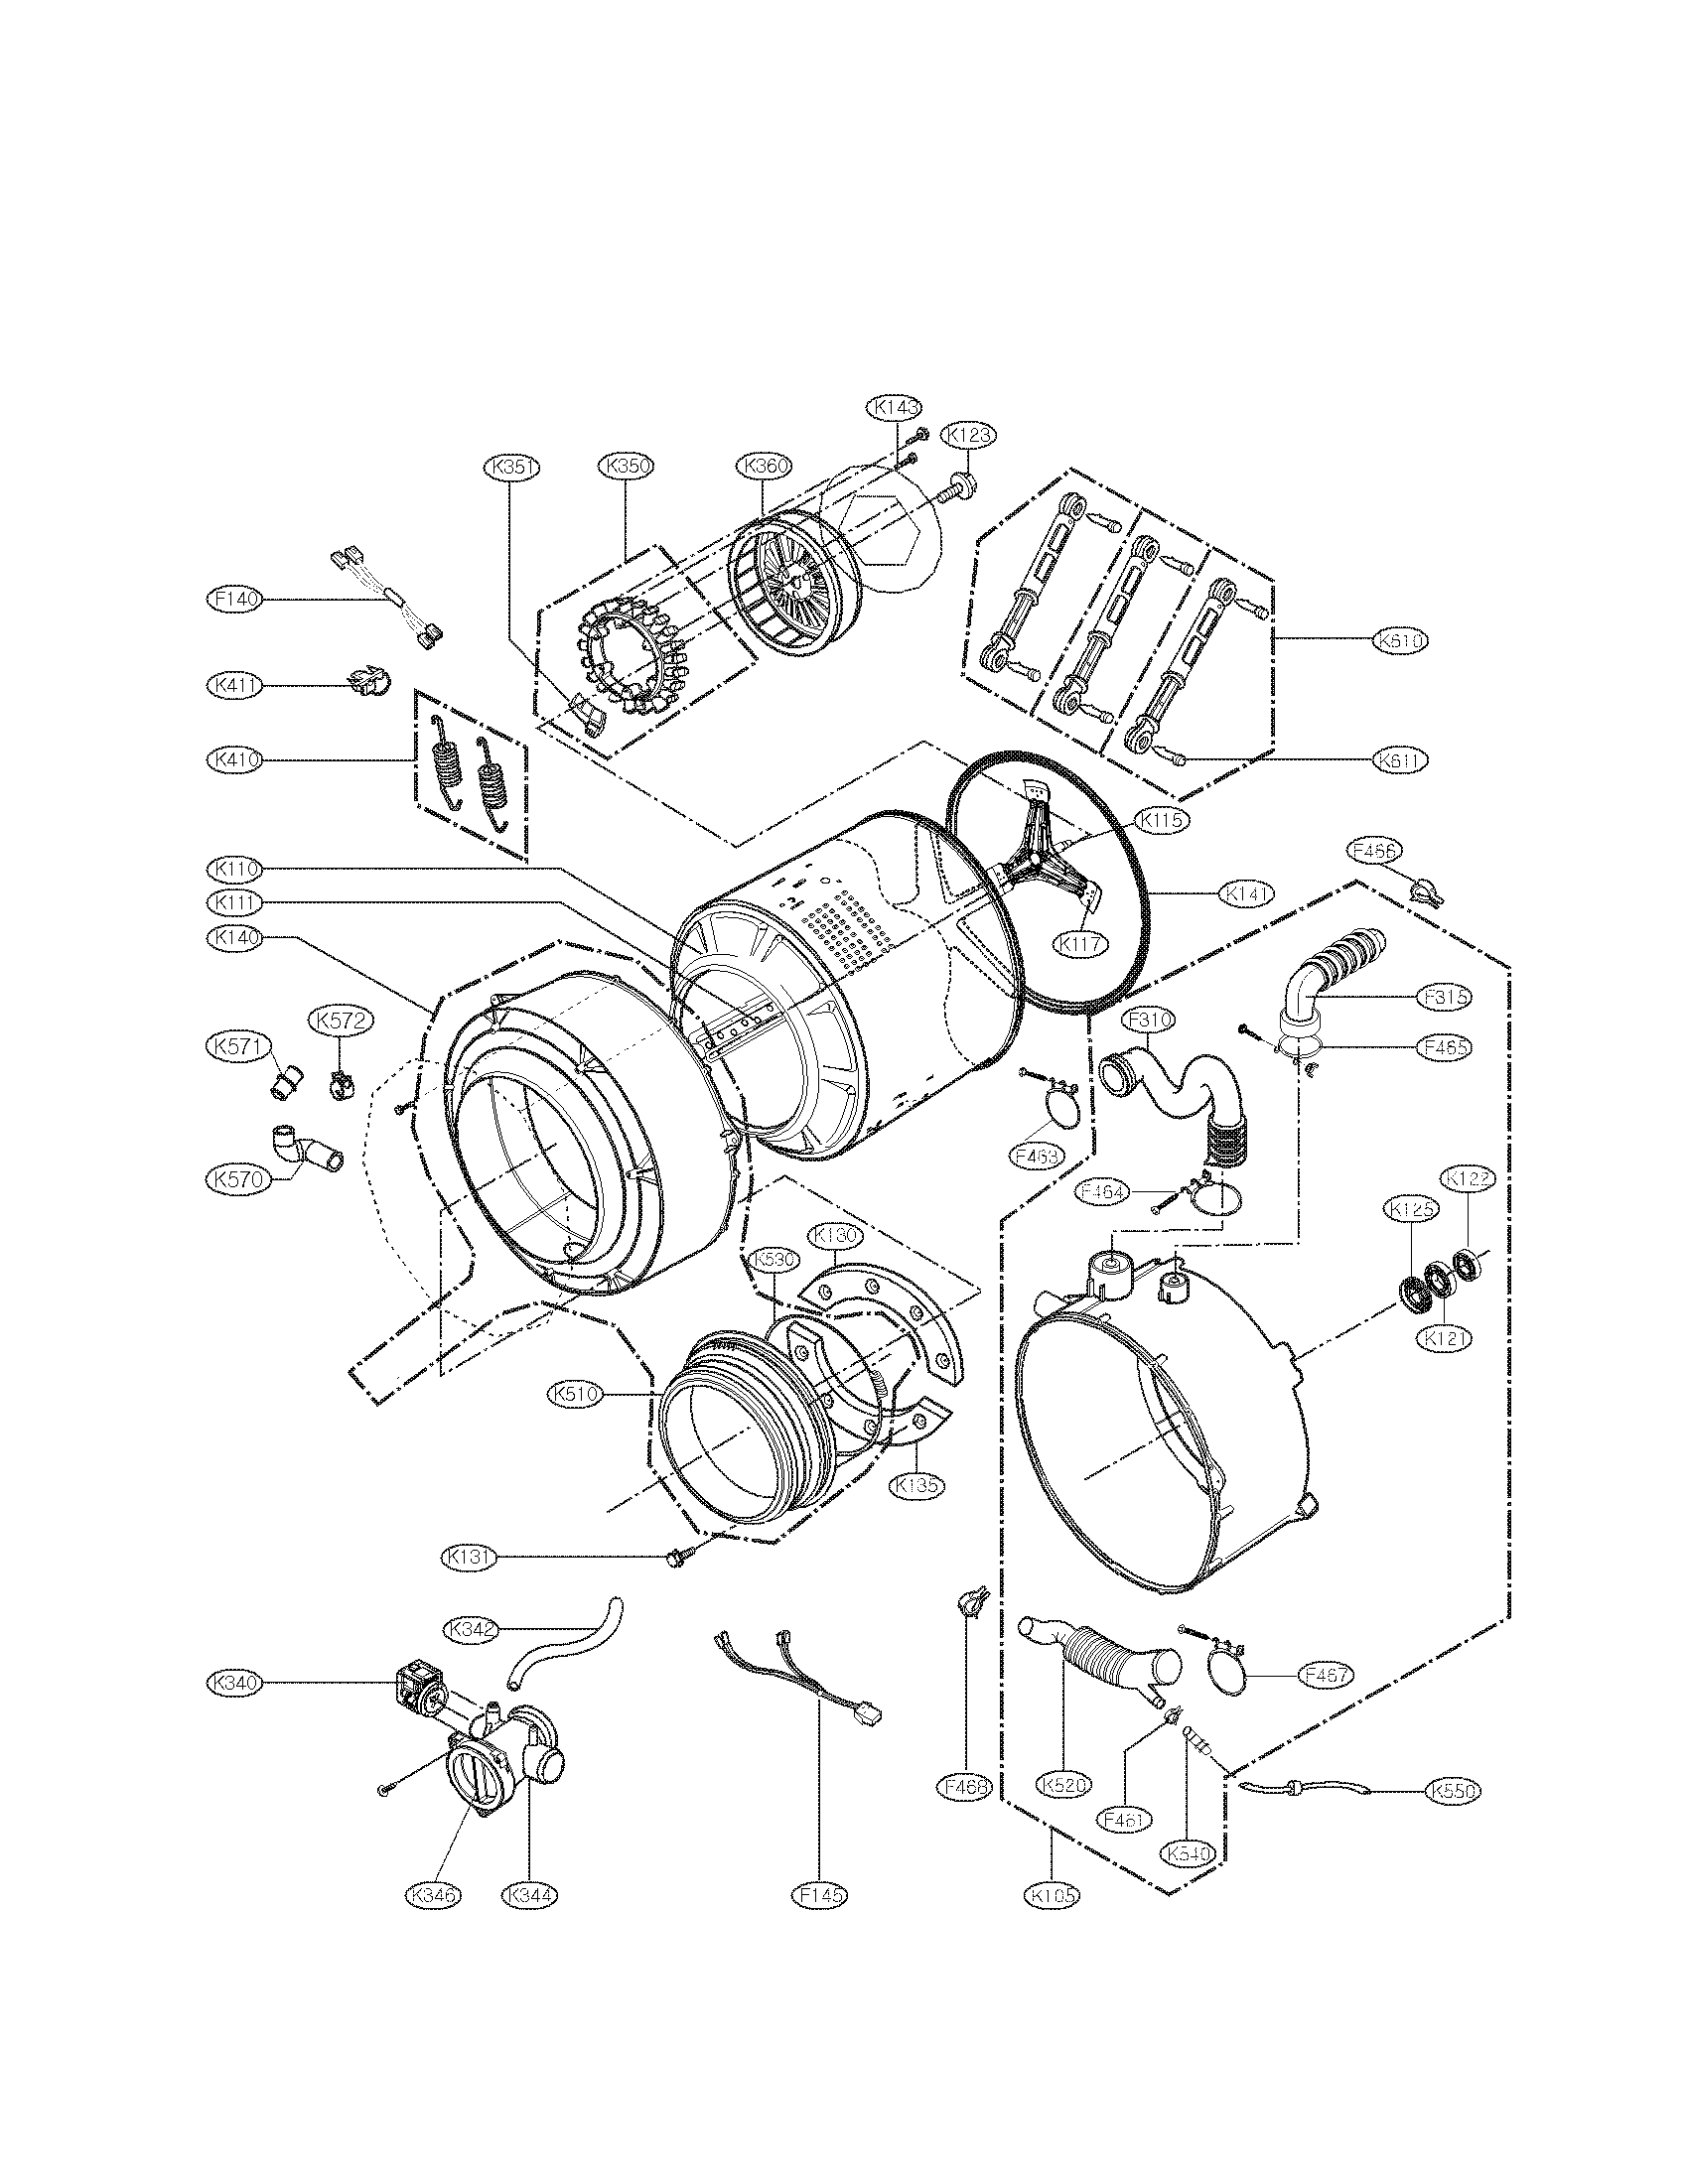 Lg Wm2050cw Parts Diagram